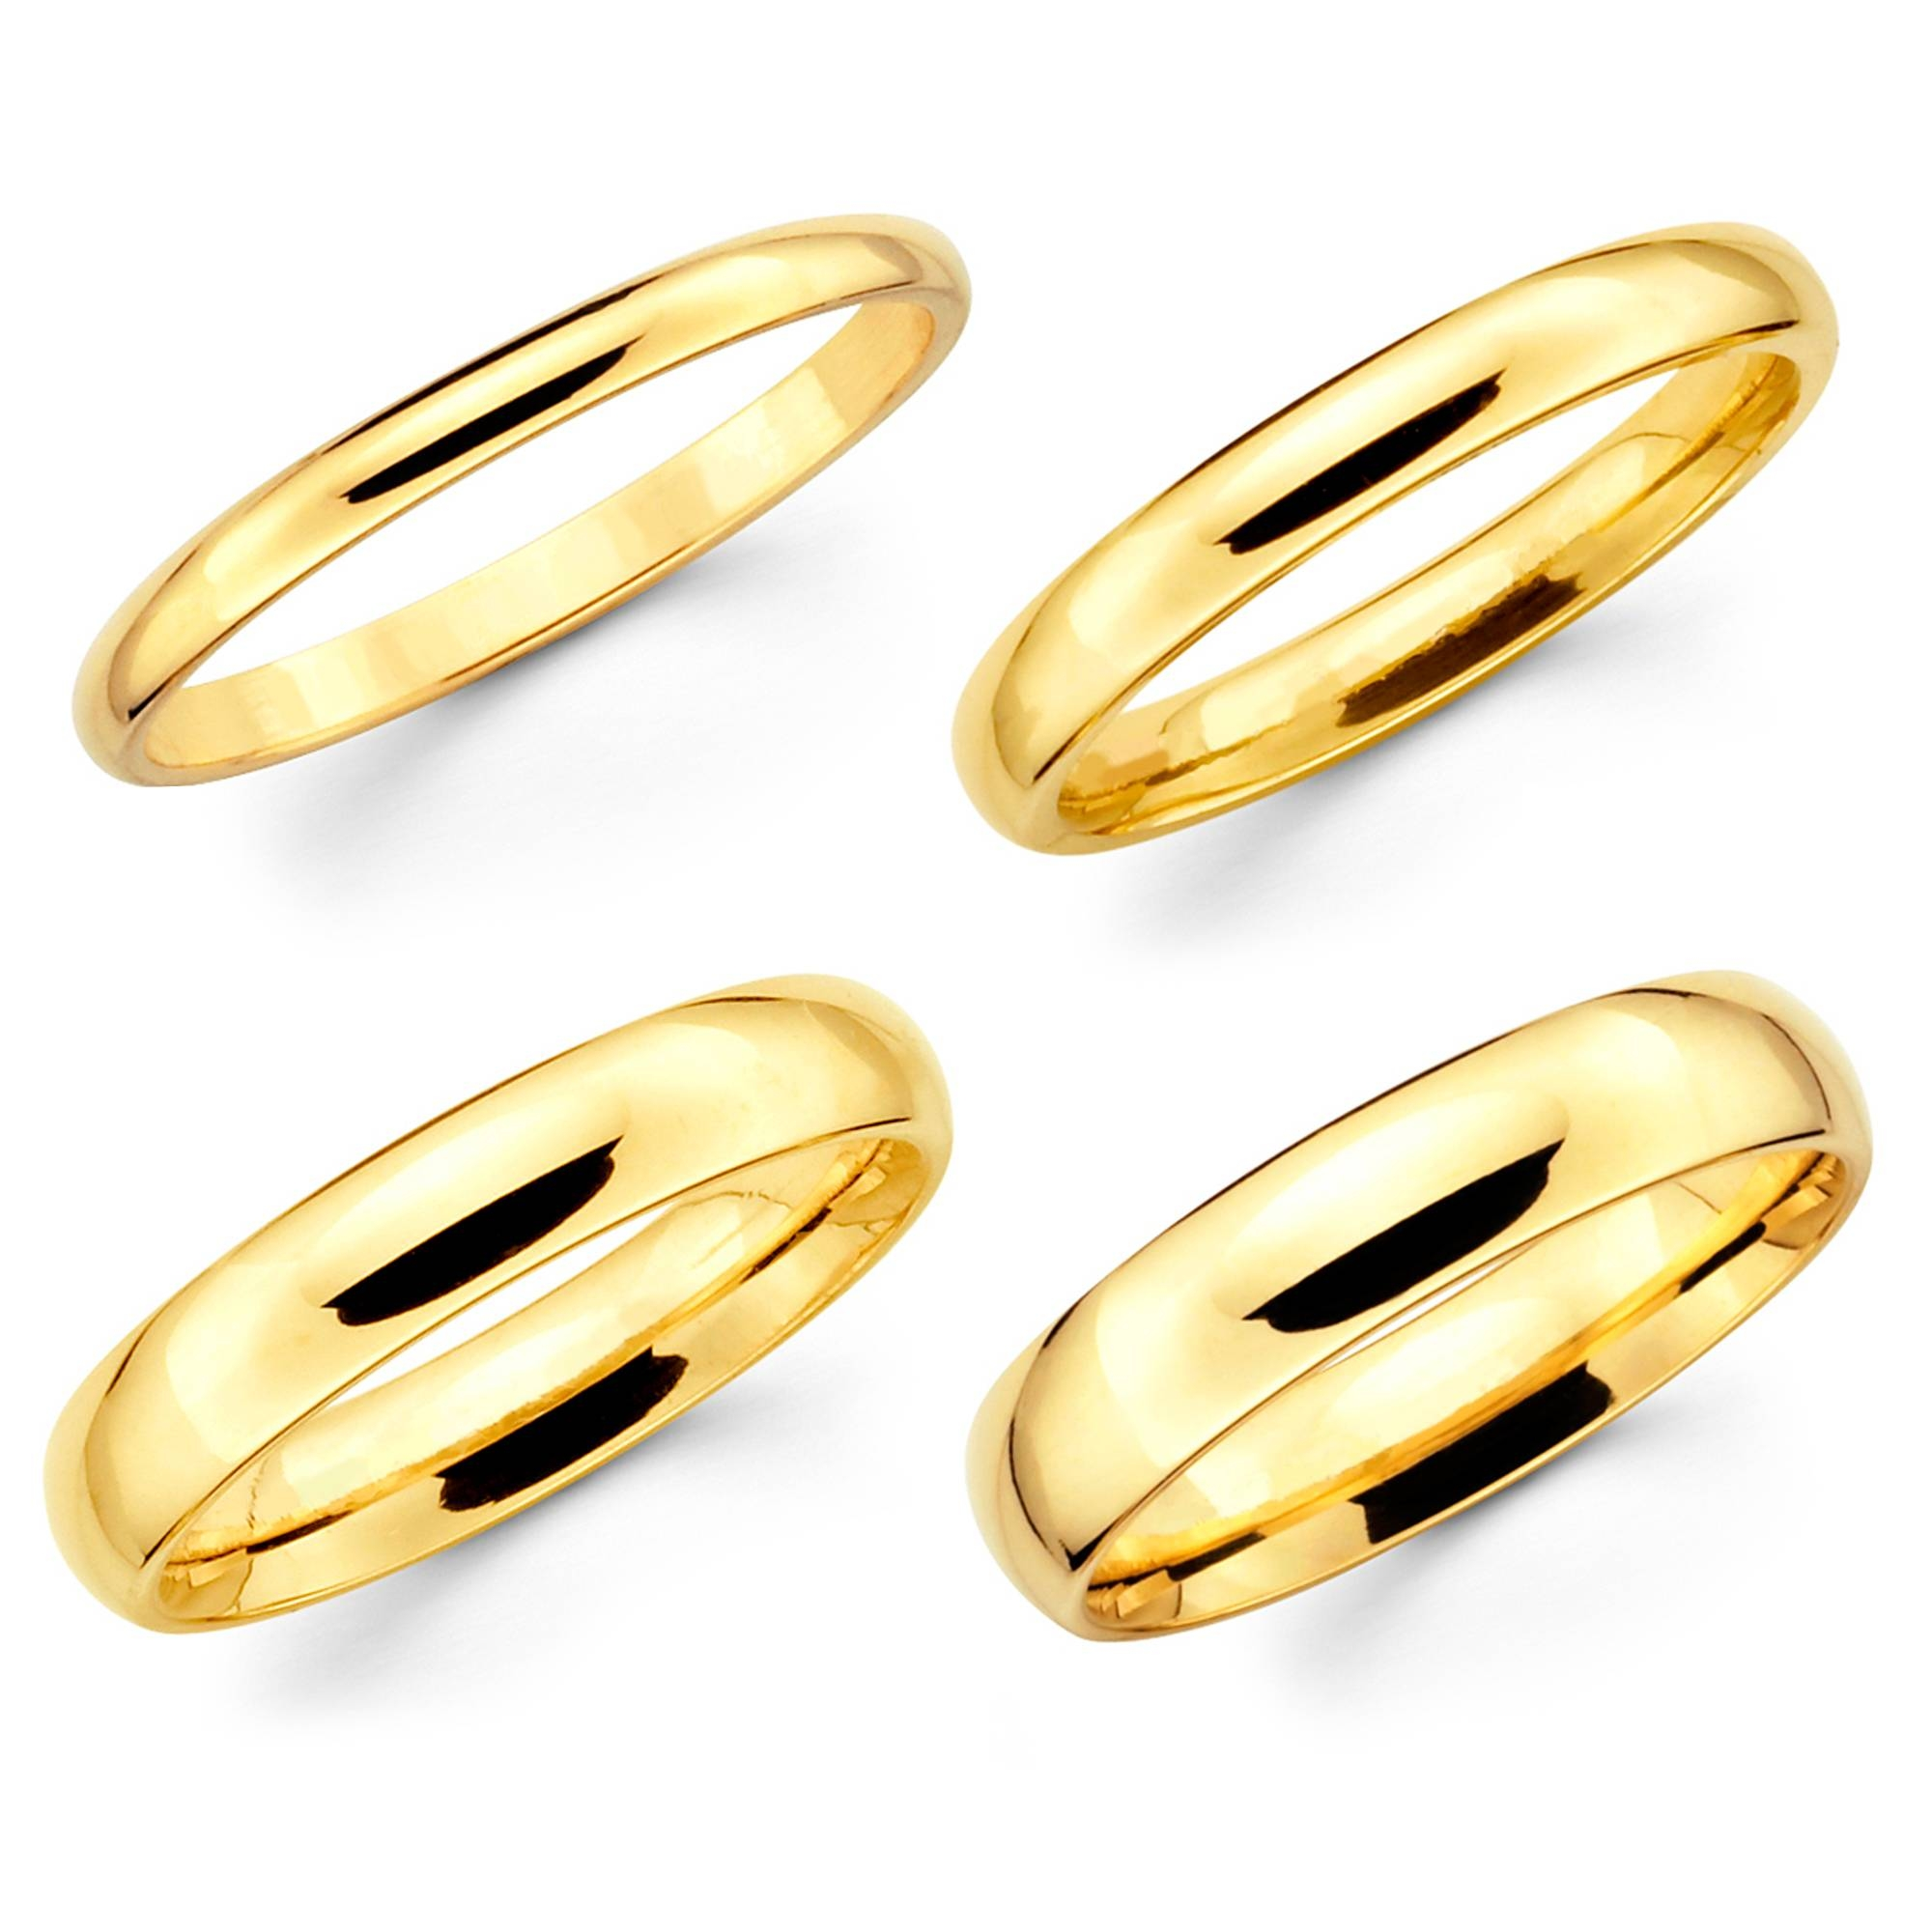 Wedding Rings : 24K Gold Wedding Ring Mens Wedding Bands White Regarding Recent 14K Yellow Gold Mens Wedding Bands (View 12 of 15)